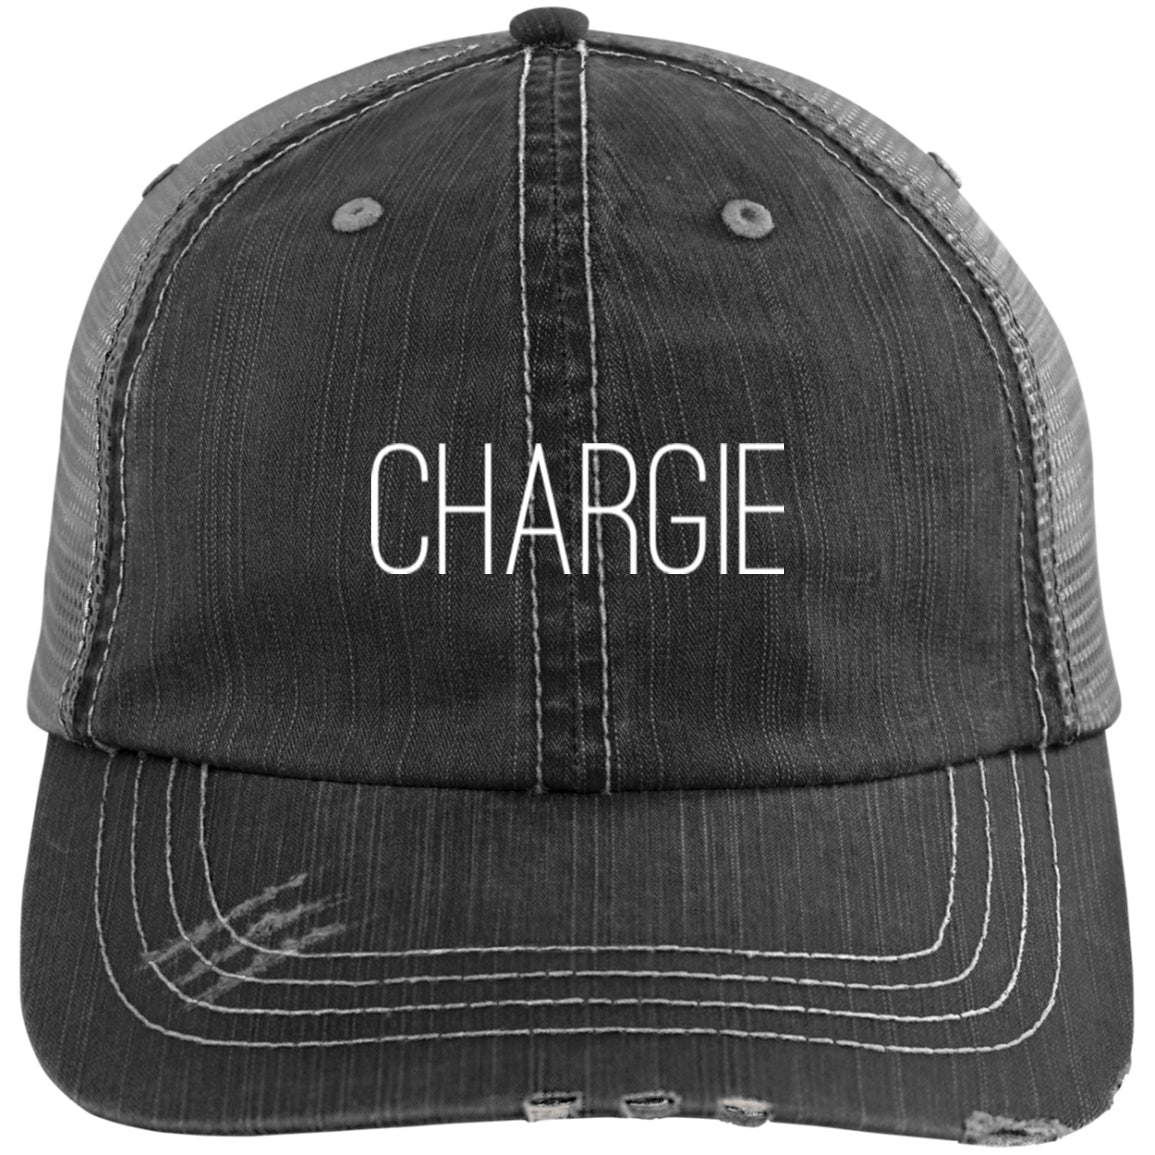 Iconic Chargie Trucker Cap - The Unchargeables